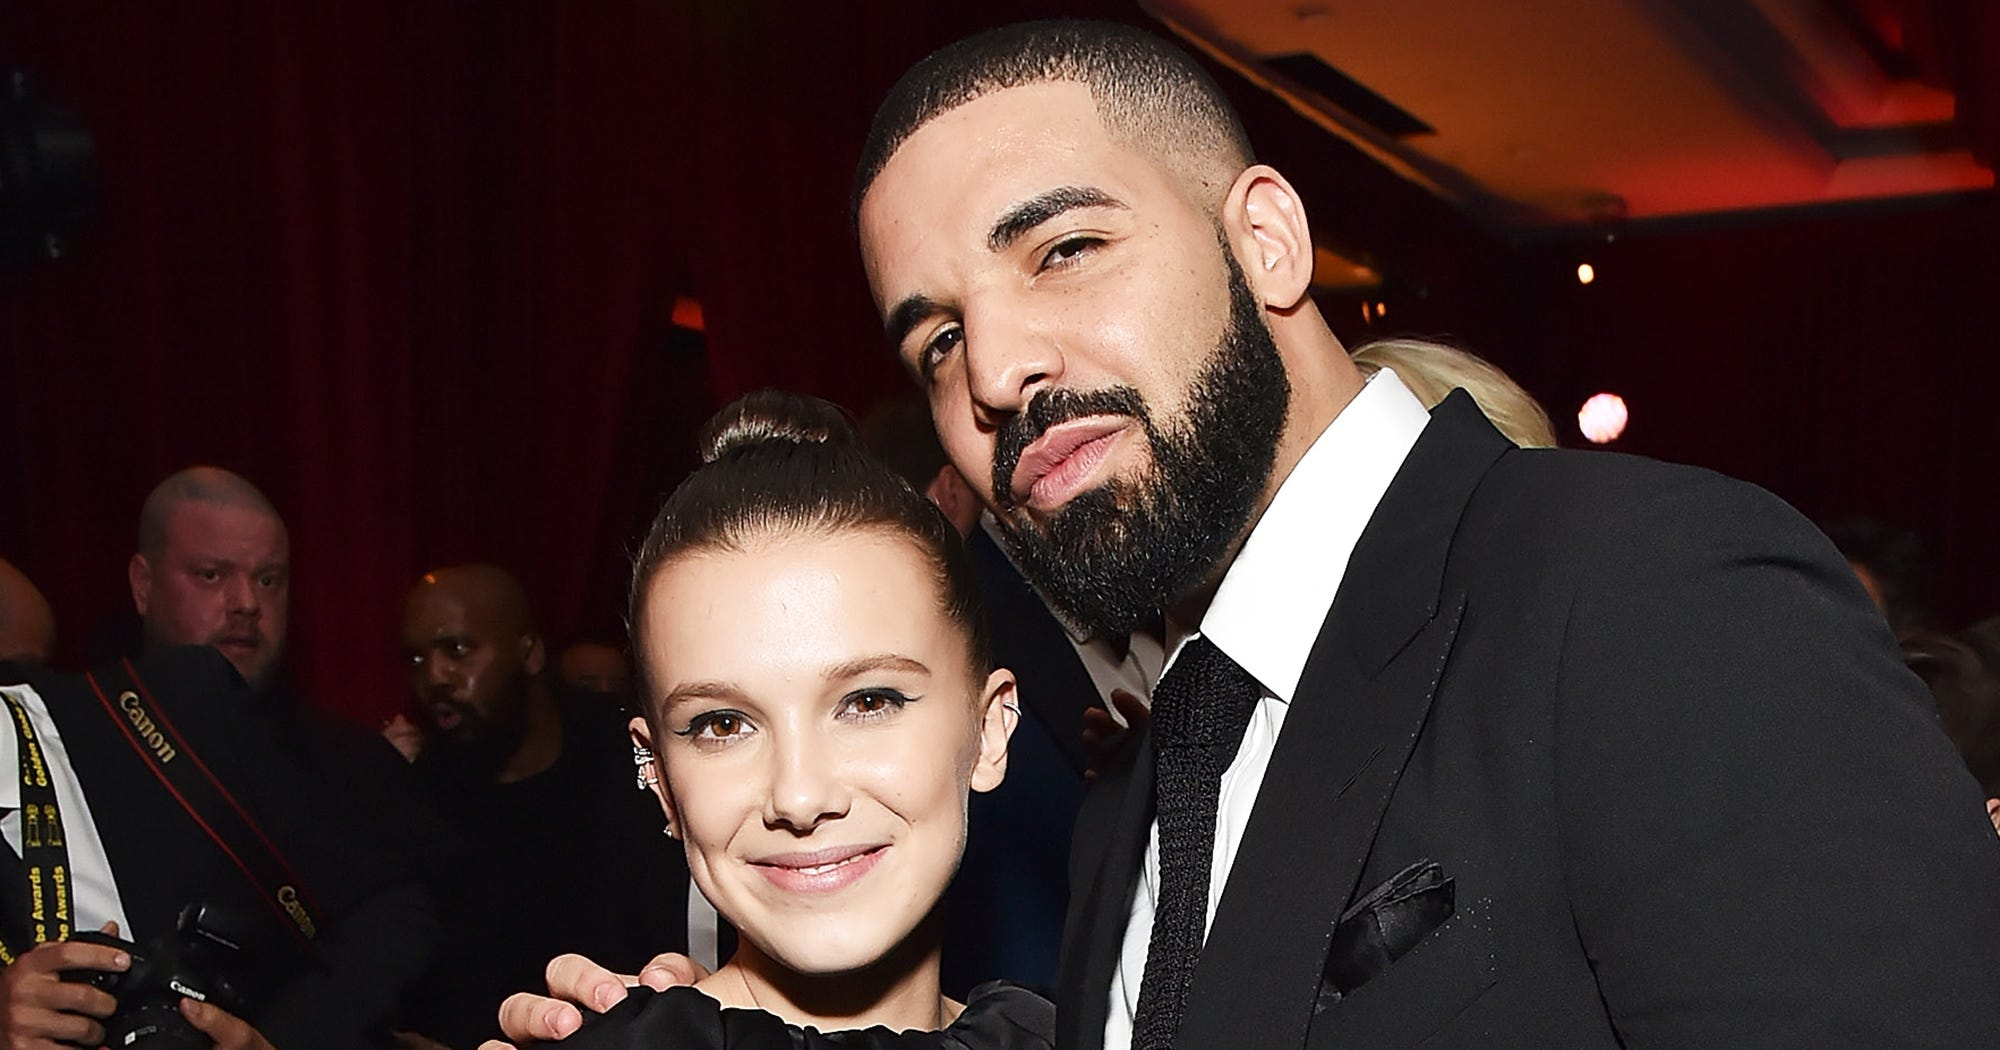 Millie Bobby Brown Doesn't Get Why Everyone's Being So Weird About Her & Drake